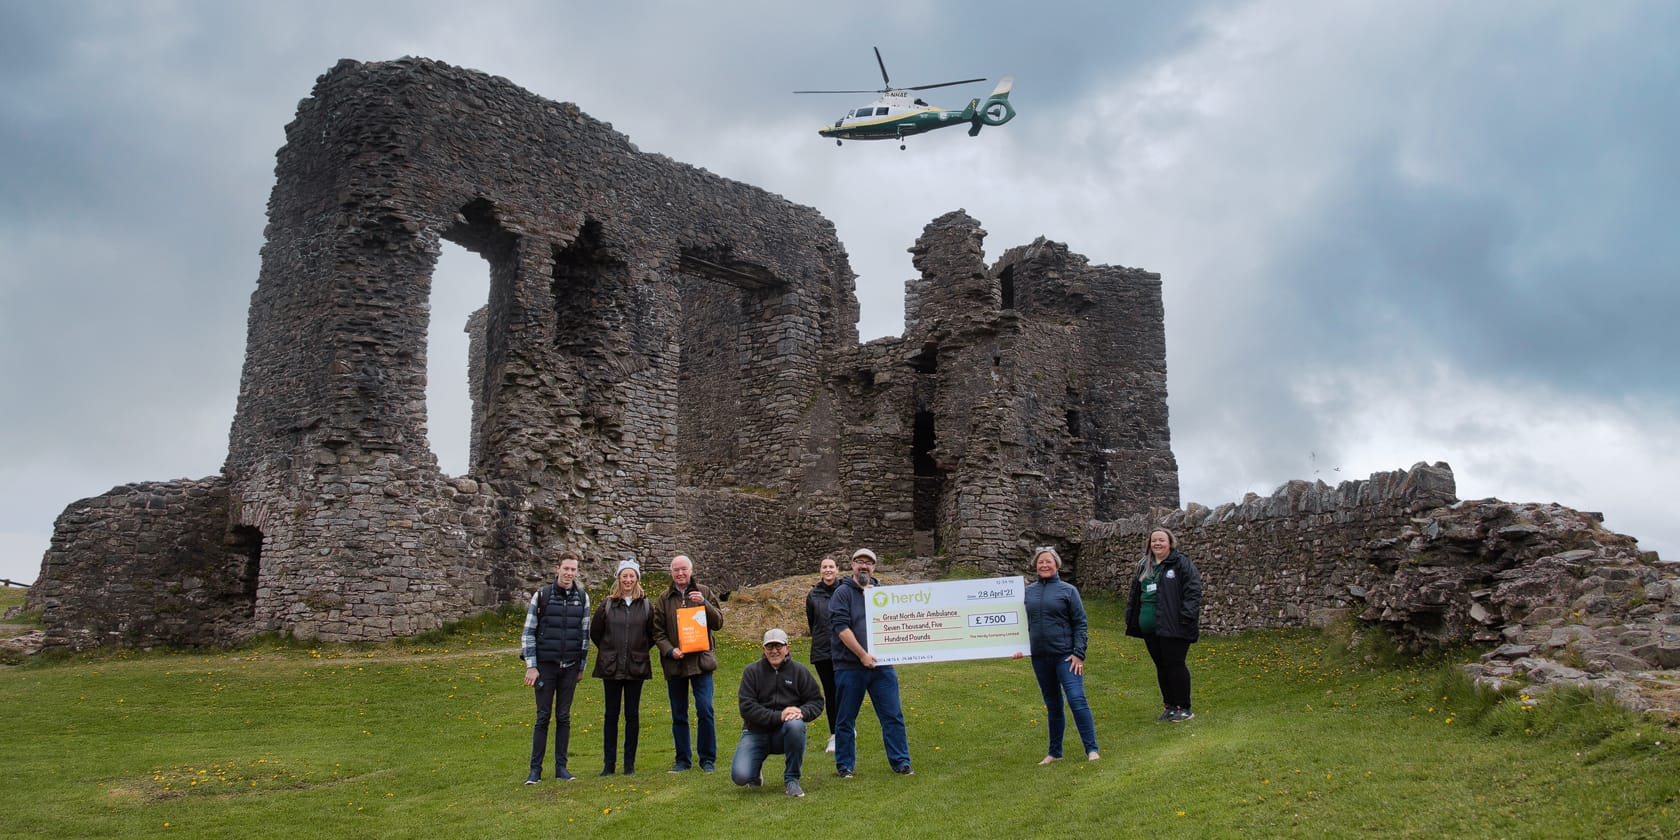 Herdy Donates £7500 to Great North Air Ambulance Service